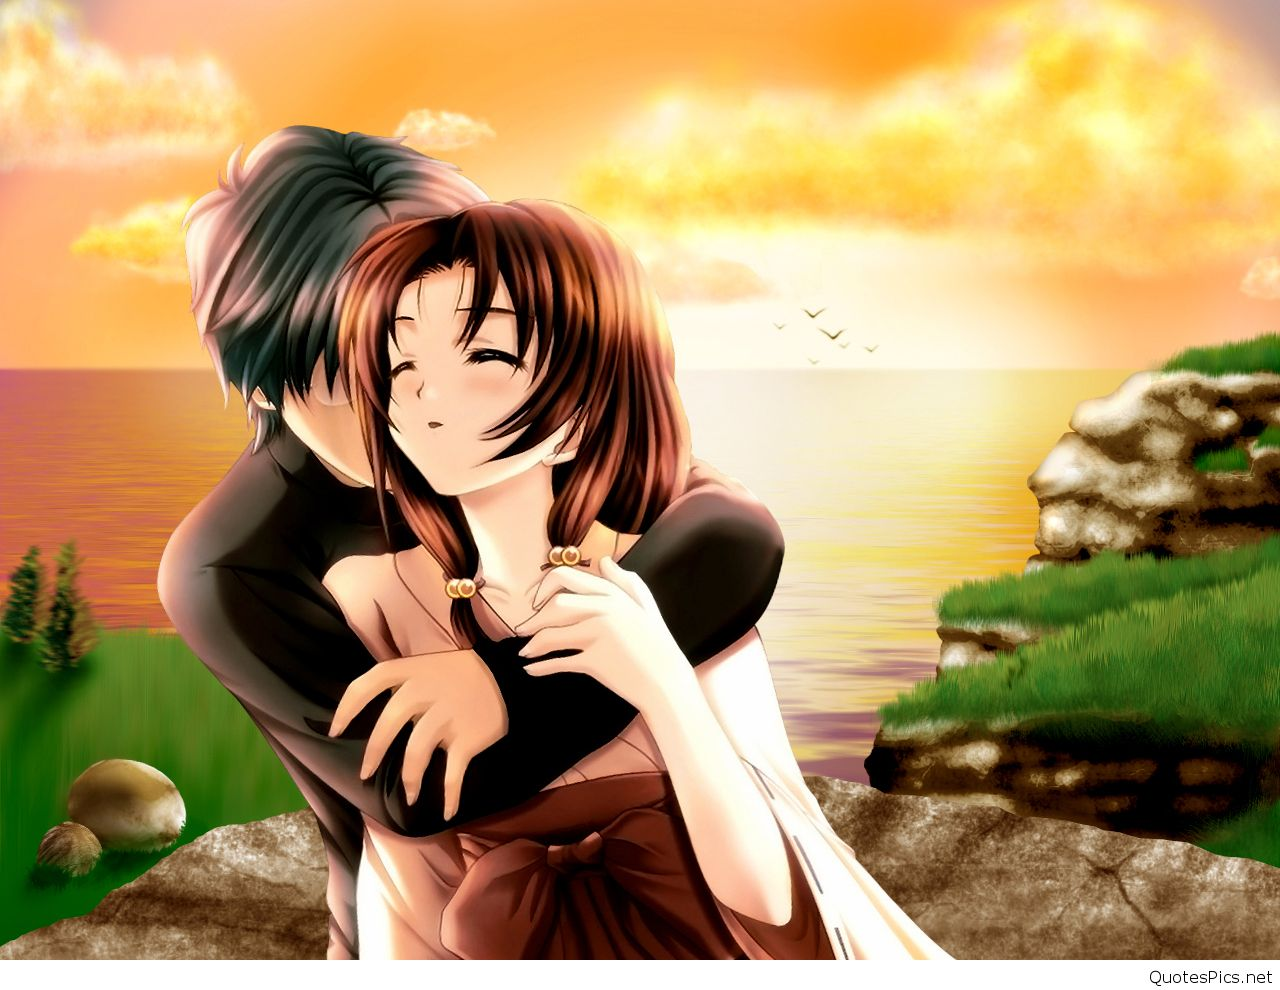 Amazing Love Couple Wallpapers For Facebook Pictures 1280x990